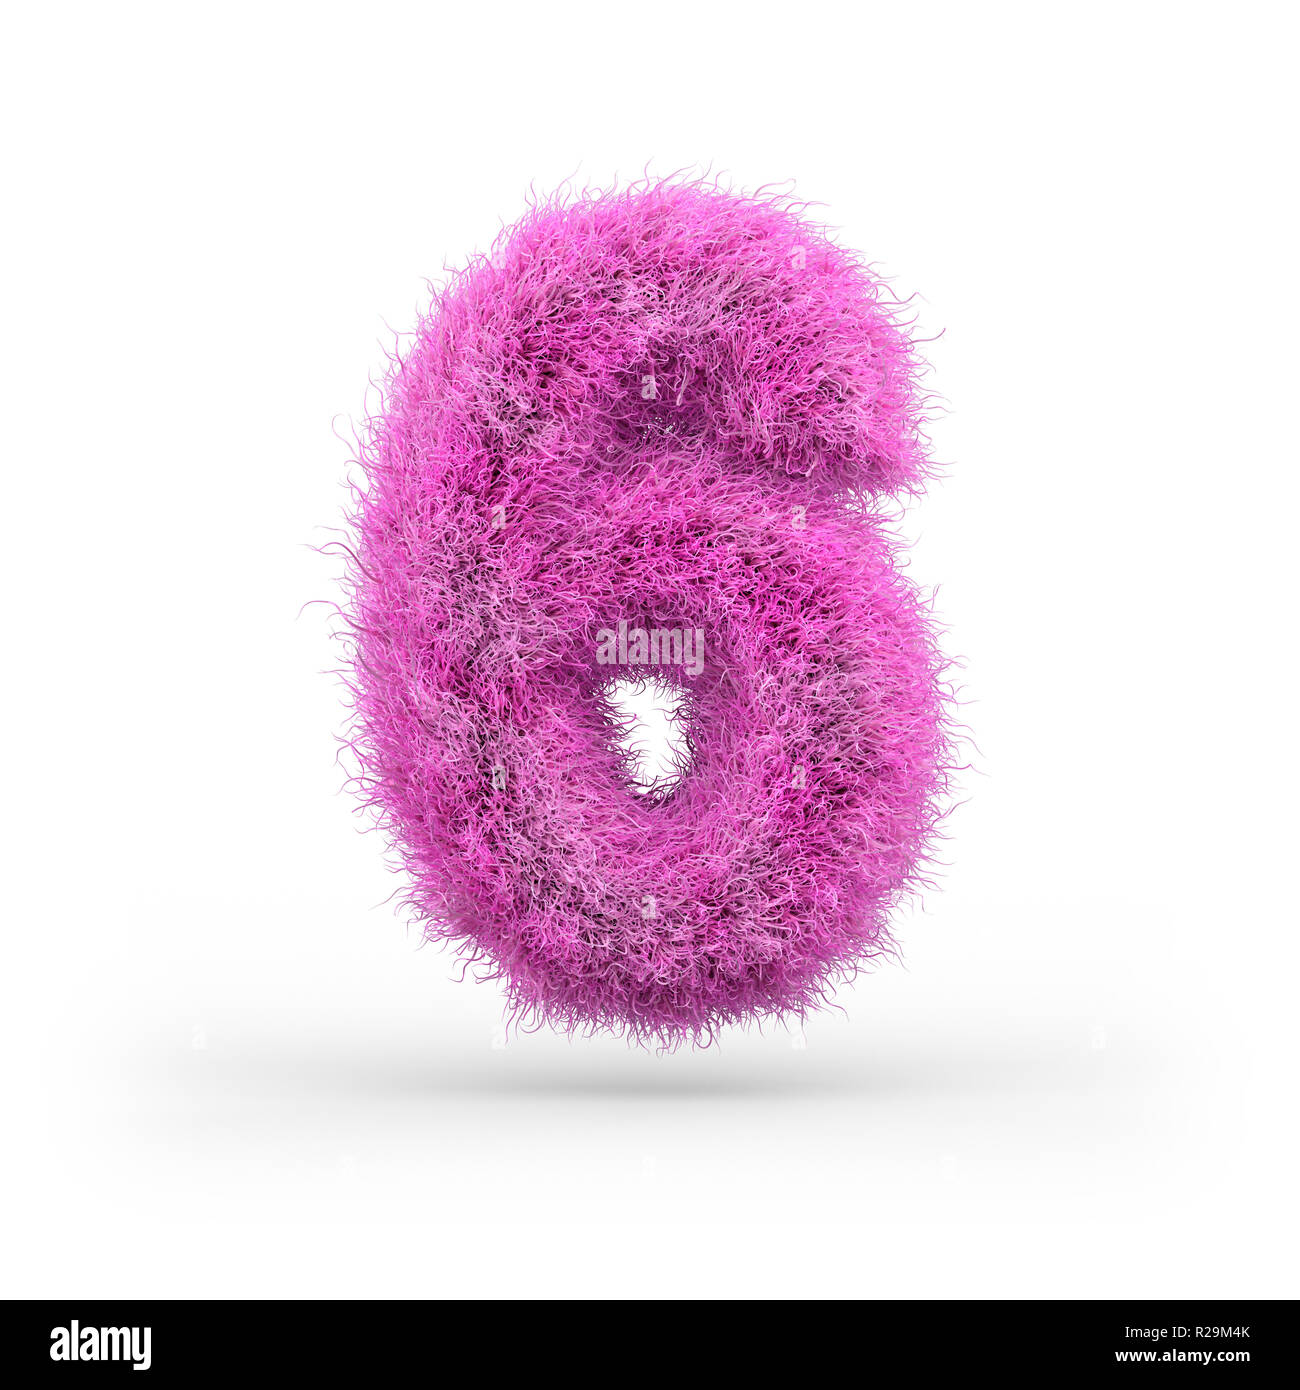 Uppercase fluffy and furry font made of fur texture for poster printing, branding, advertising. 3D rendering - Stock Image